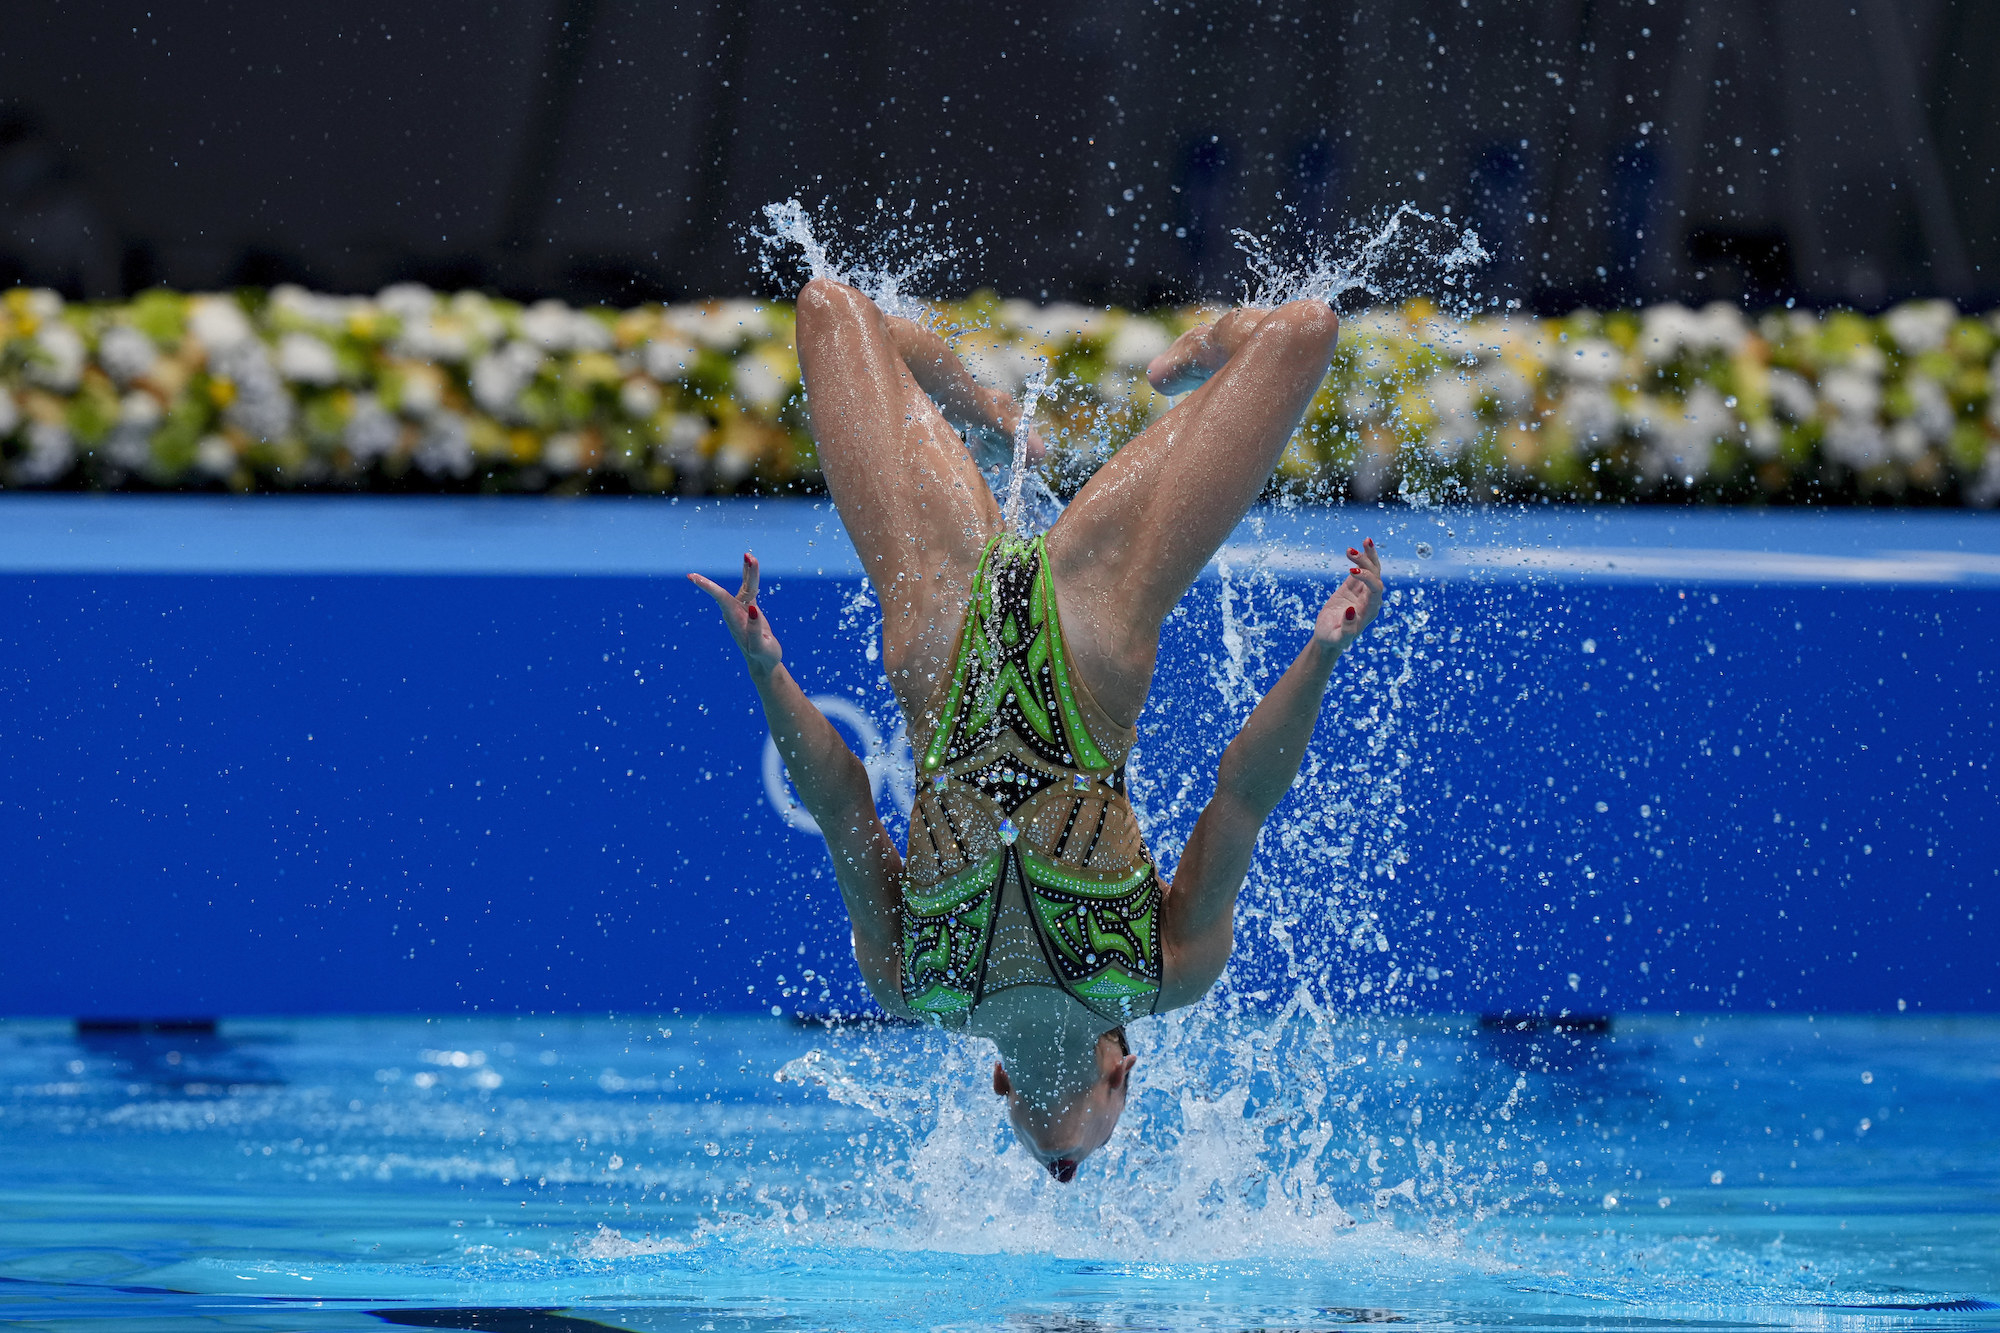 A woman swimmer does a backflip, captured upside-down mid-air